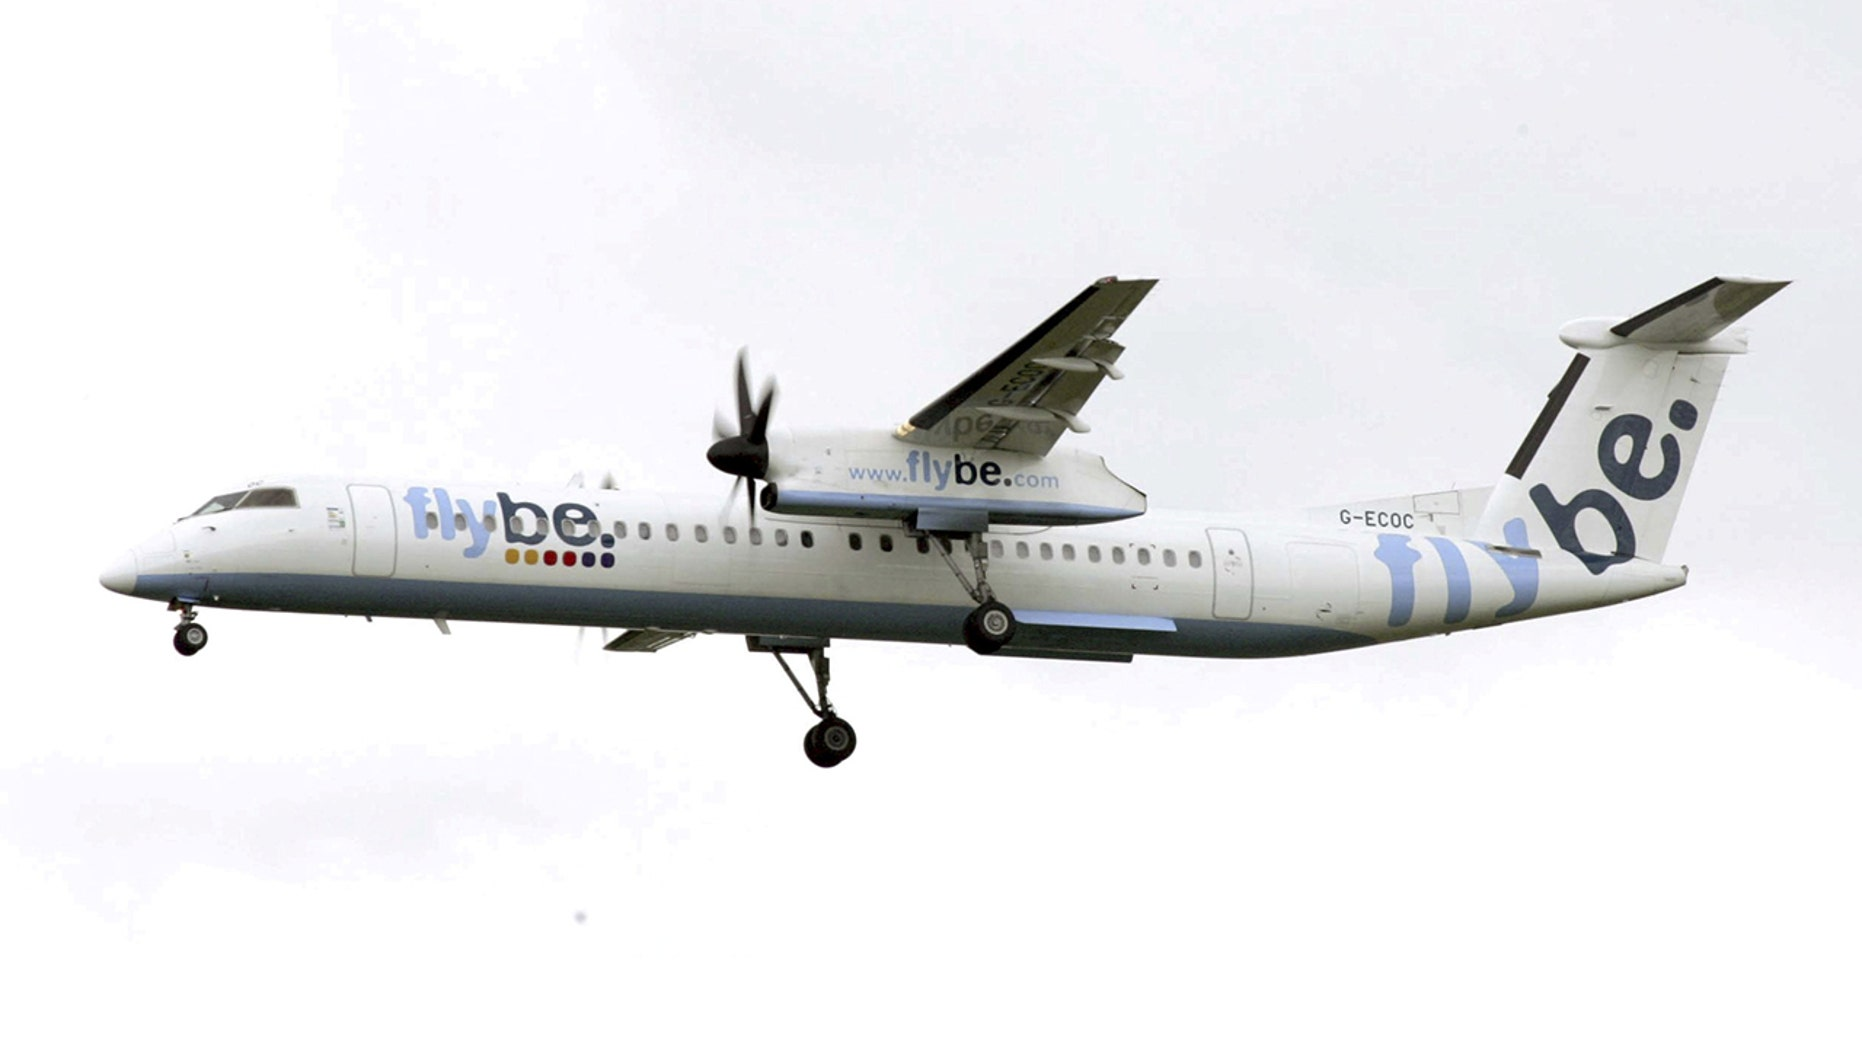 It's been revealed that the reason a Flybe plane plunged 500 feet in a January incident is because of an error with the autopilot setting.